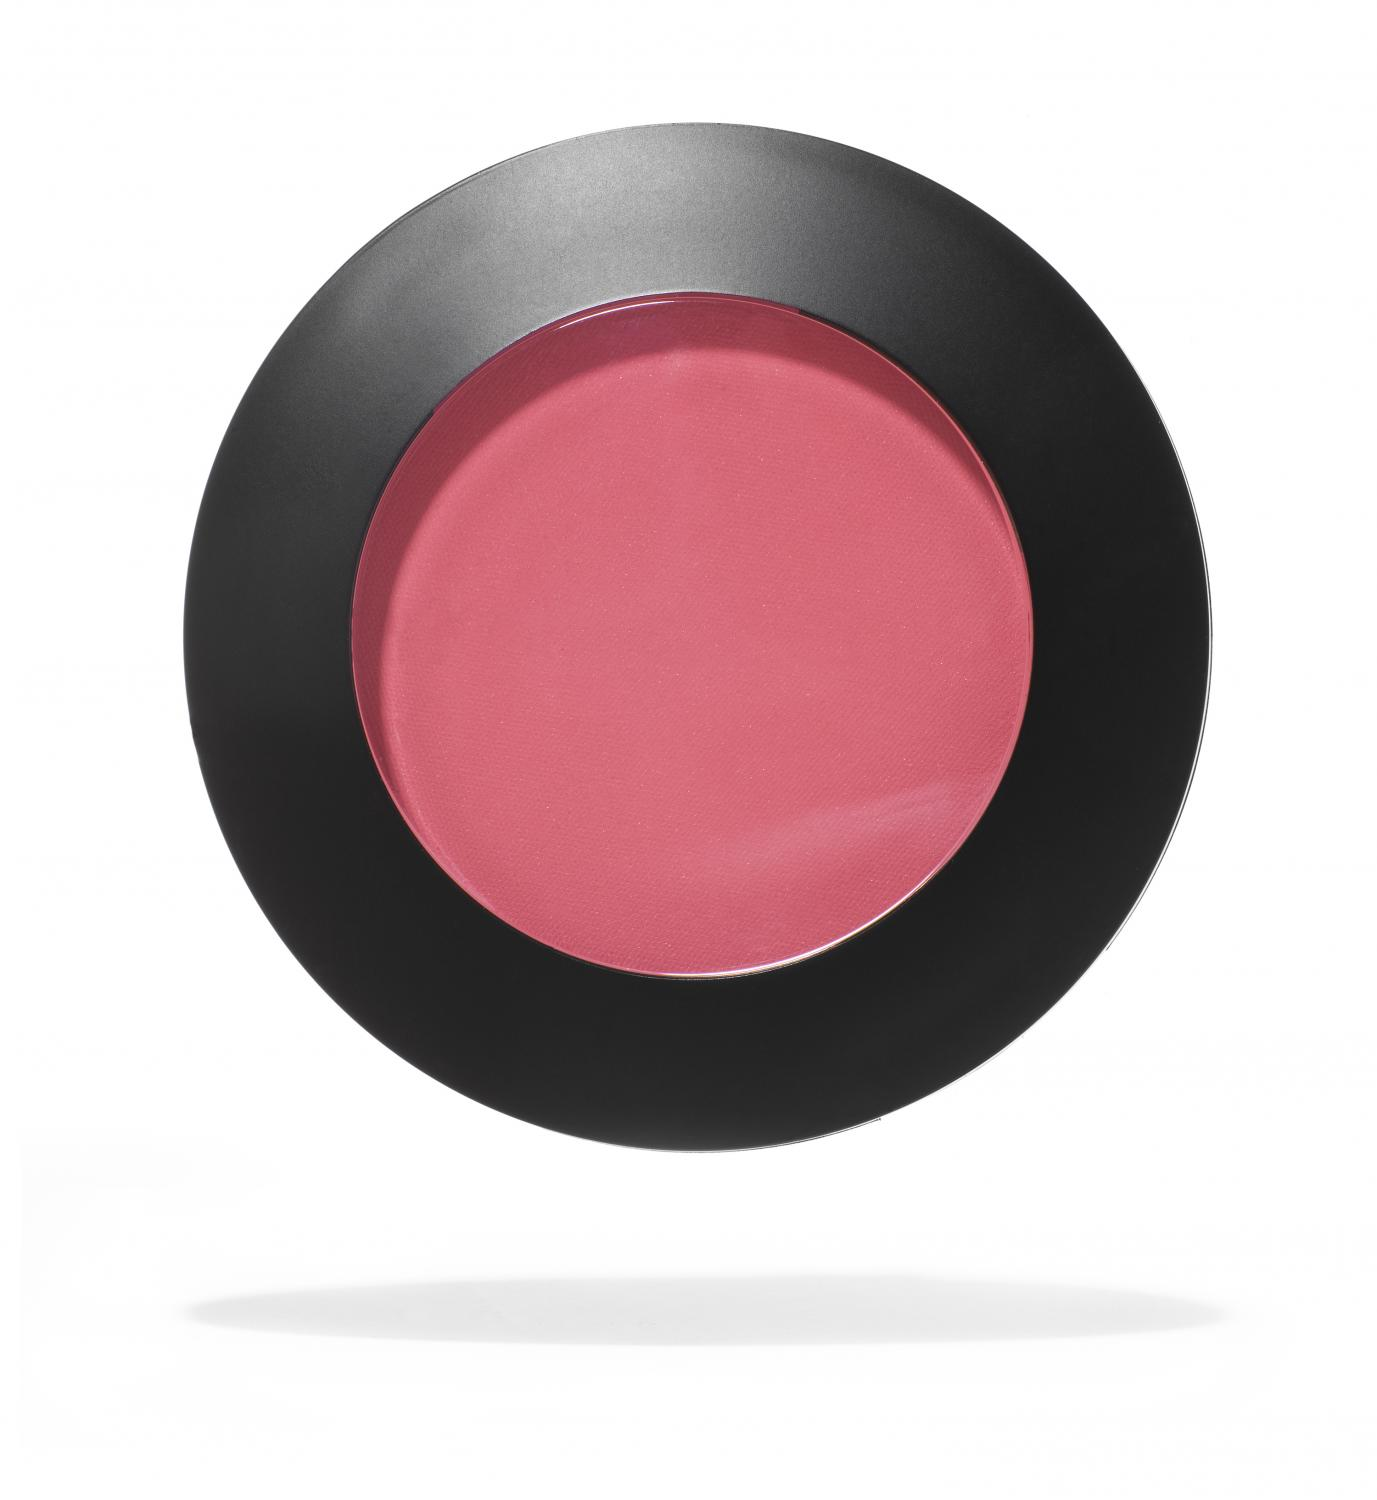 ASTI - MICRONIZED POWDER BLUSH